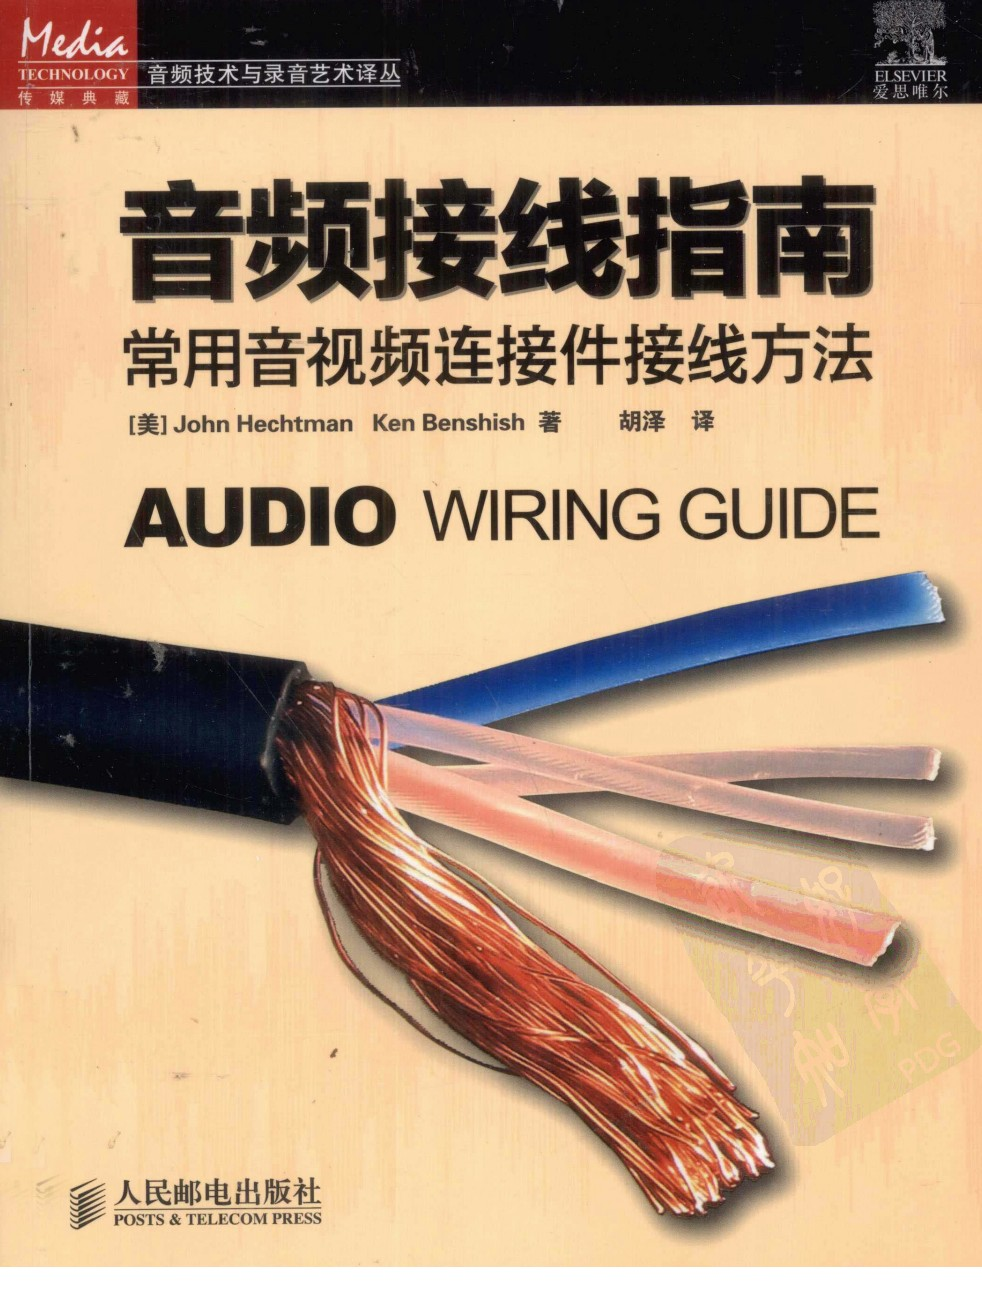 Marvelous Audio Wiring Guide John Hechtman Pdf Go Wiring Diagram Wiring Digital Resources Indicompassionincorg